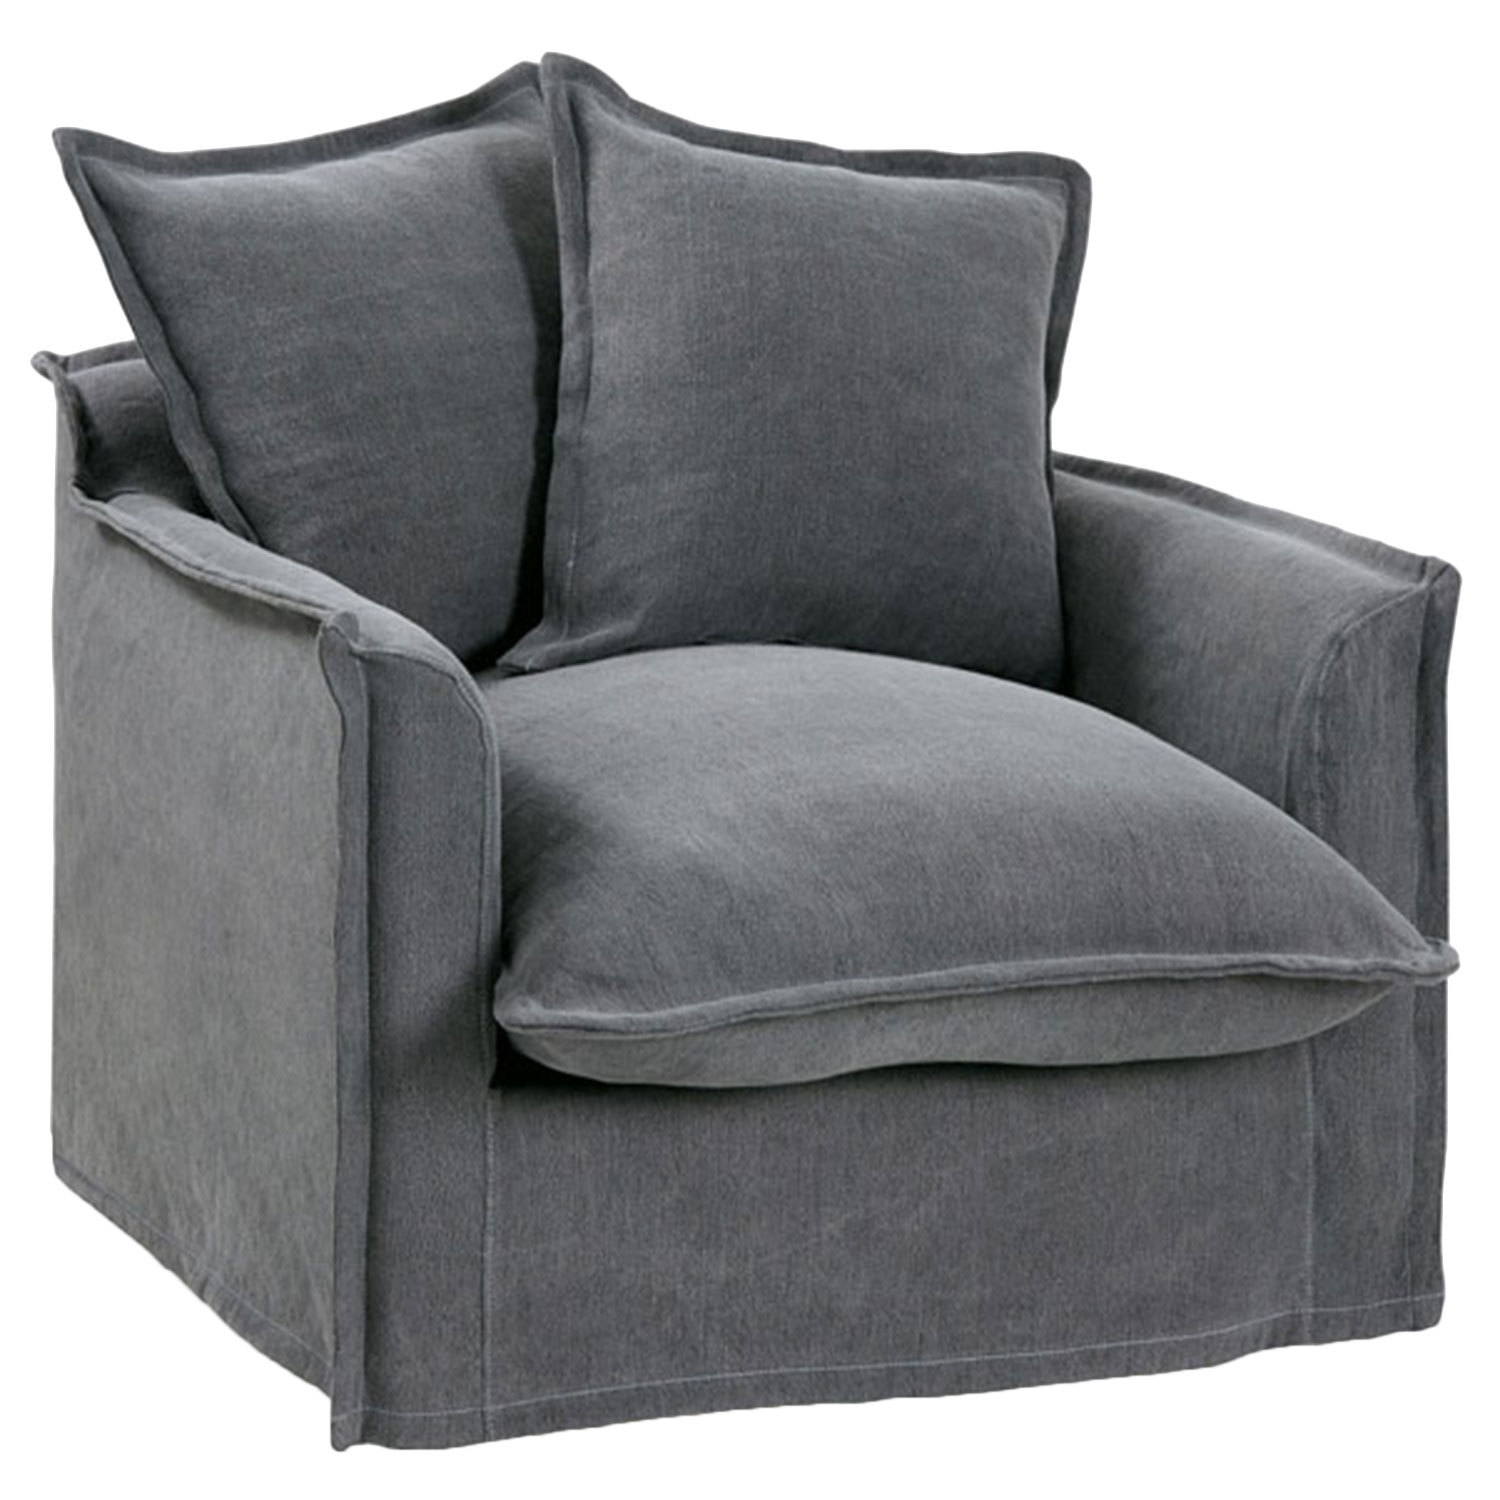 Slip Cover For Chair Slate Cumulus Slipcover Armchair